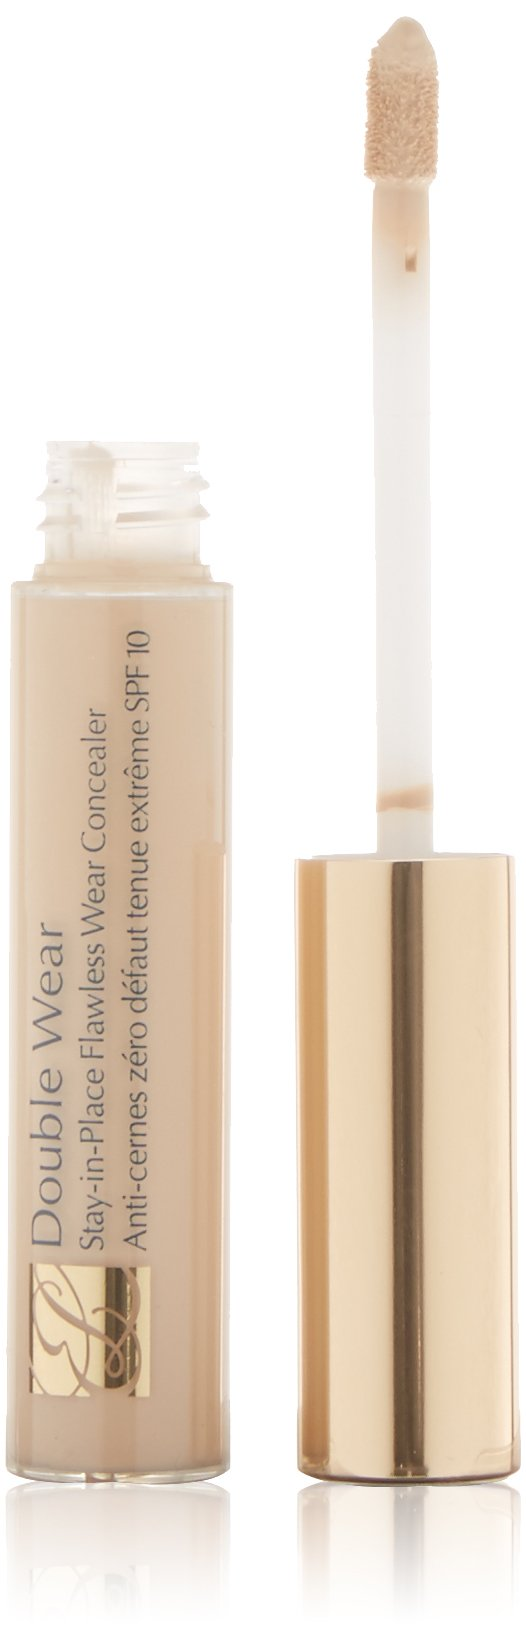 Estee Lauder Double Wear Stay-In-Place Flawless Concealer SPF 10, No. 1C Light/Cool, 0.24 Ounce by Estee Lauder